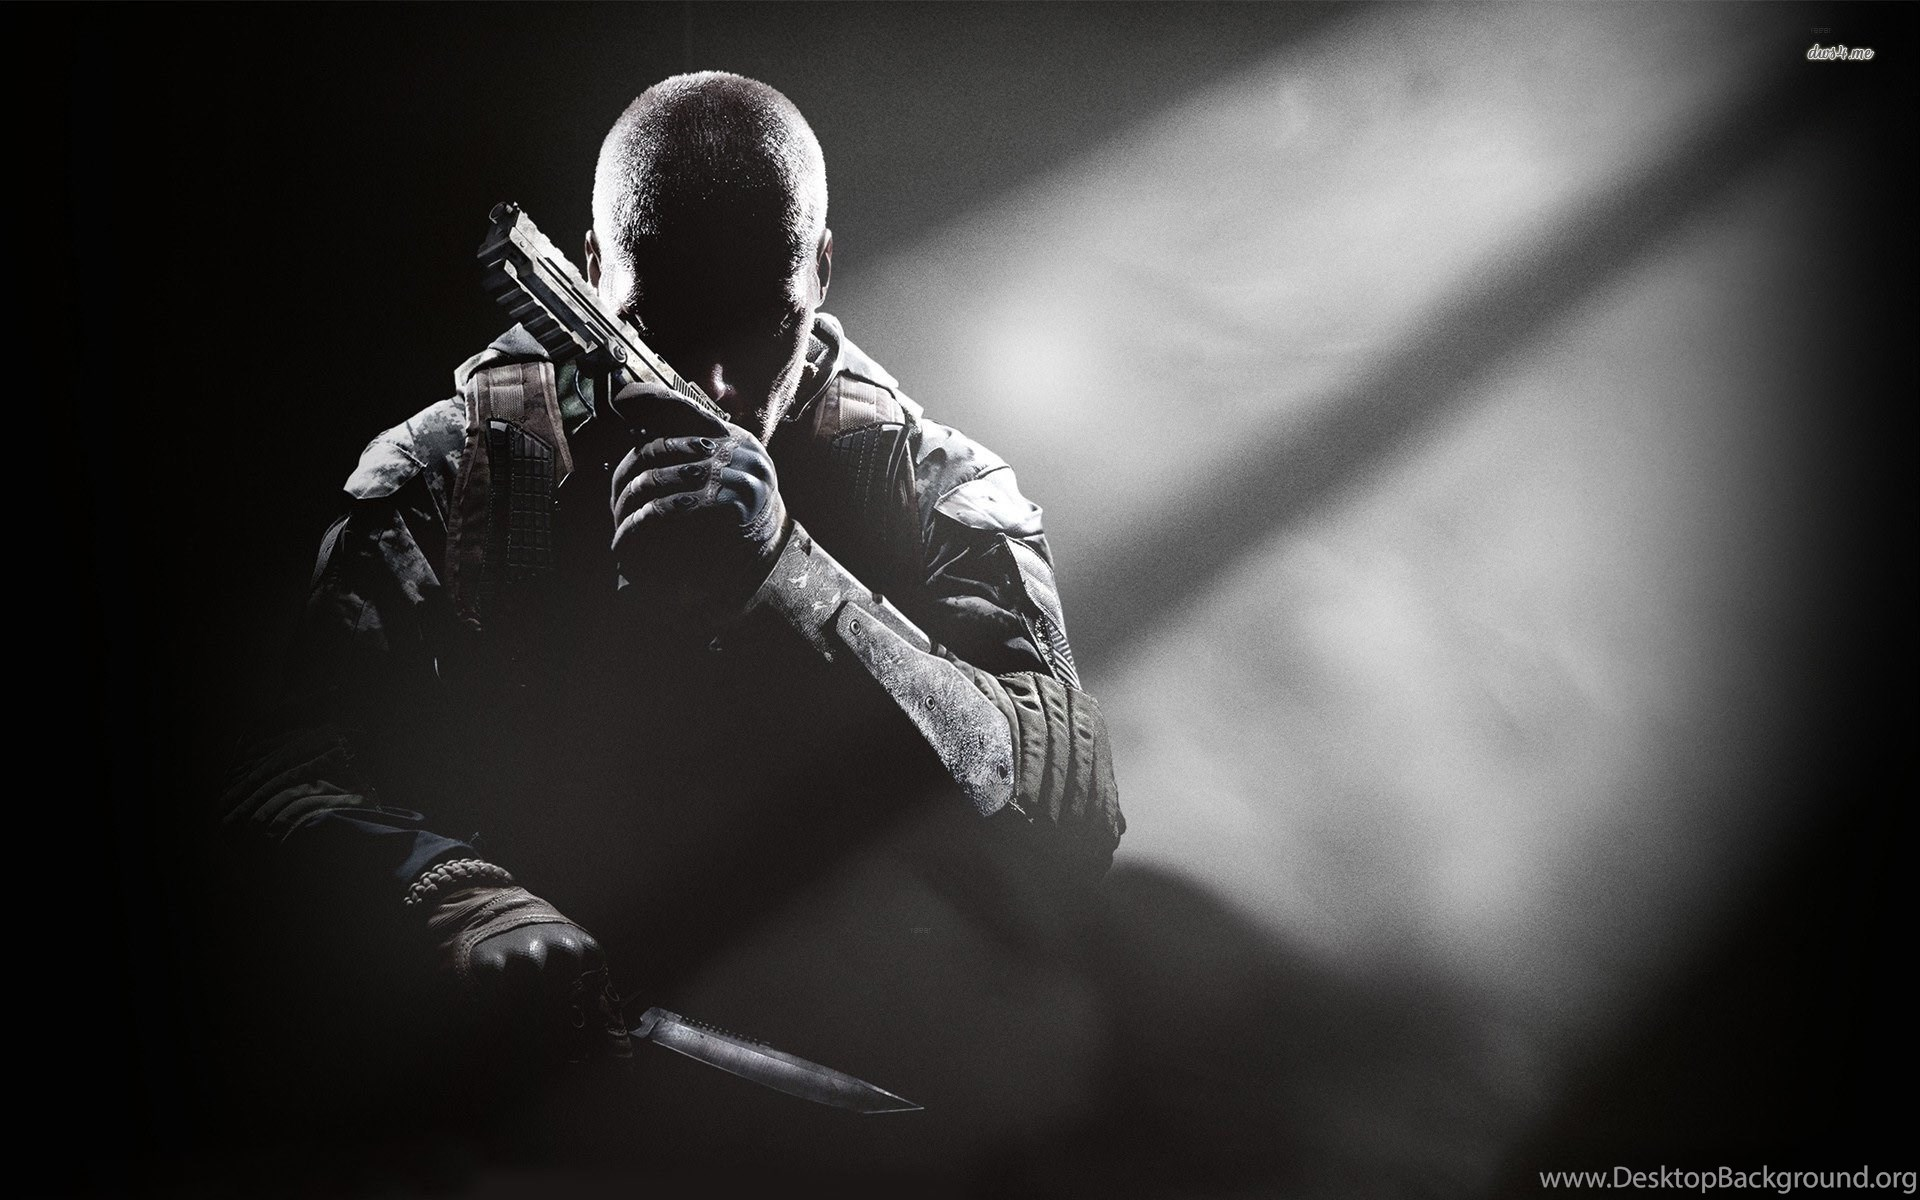 Black Ops 2 Wallpapers Hd Desktop Background